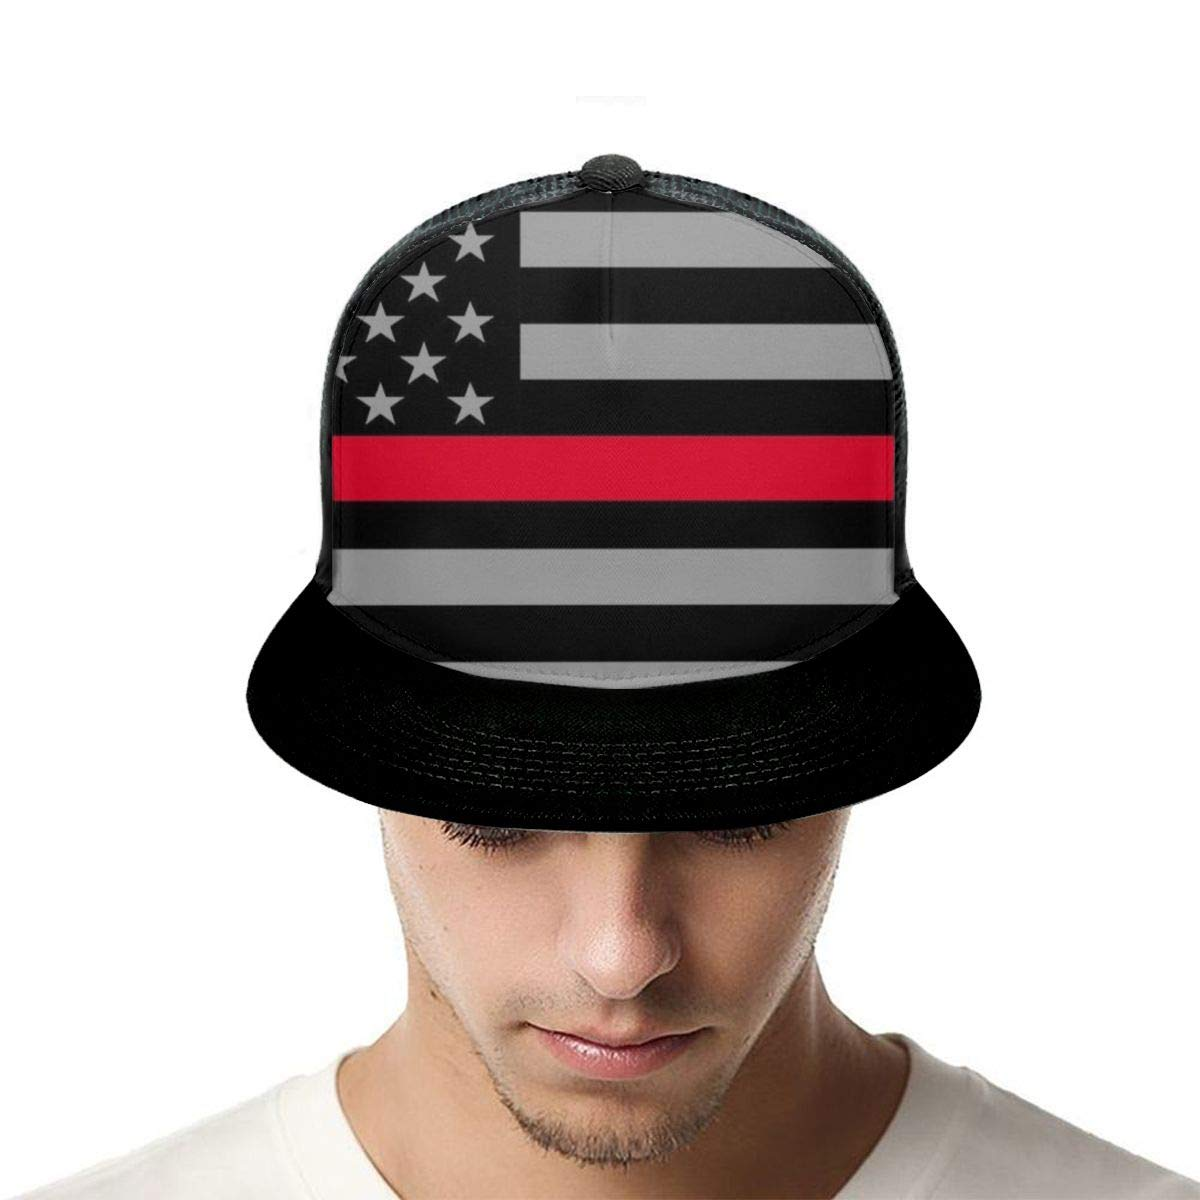 Boys and Girls 100/% Polyester American Flag with Thin Red Stripe Baseball Cap Lightweight Snapback Hat for Unisex